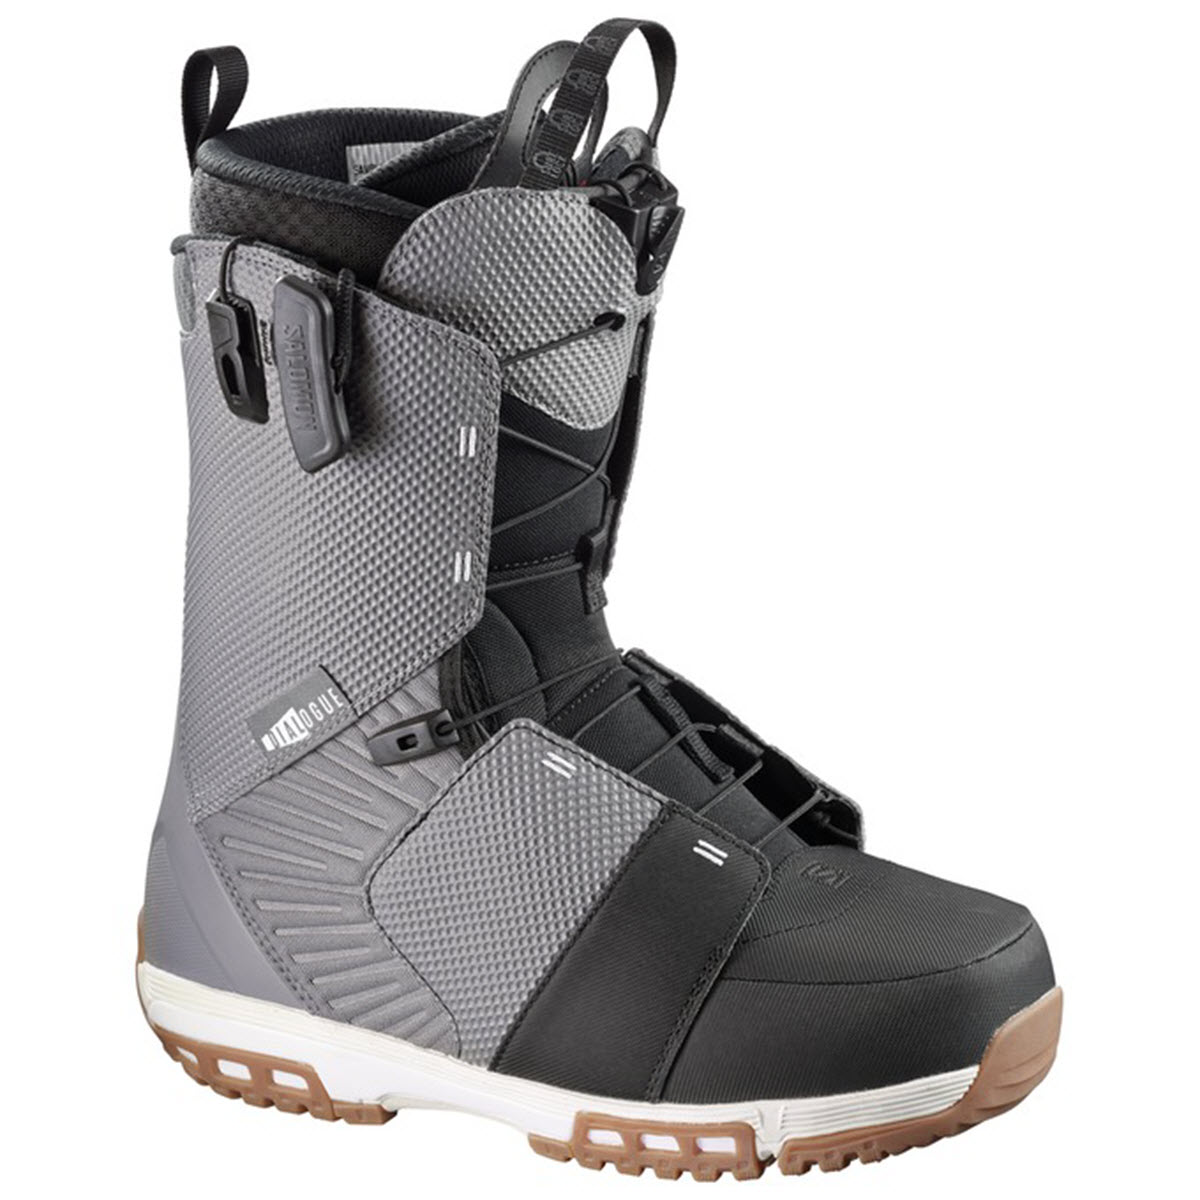 Climbing & Hiking Boots|Snowboard Boots Salomon Dialogue Speed Lace Snowboard Boots 2017 Detroit Black White UK 13.5